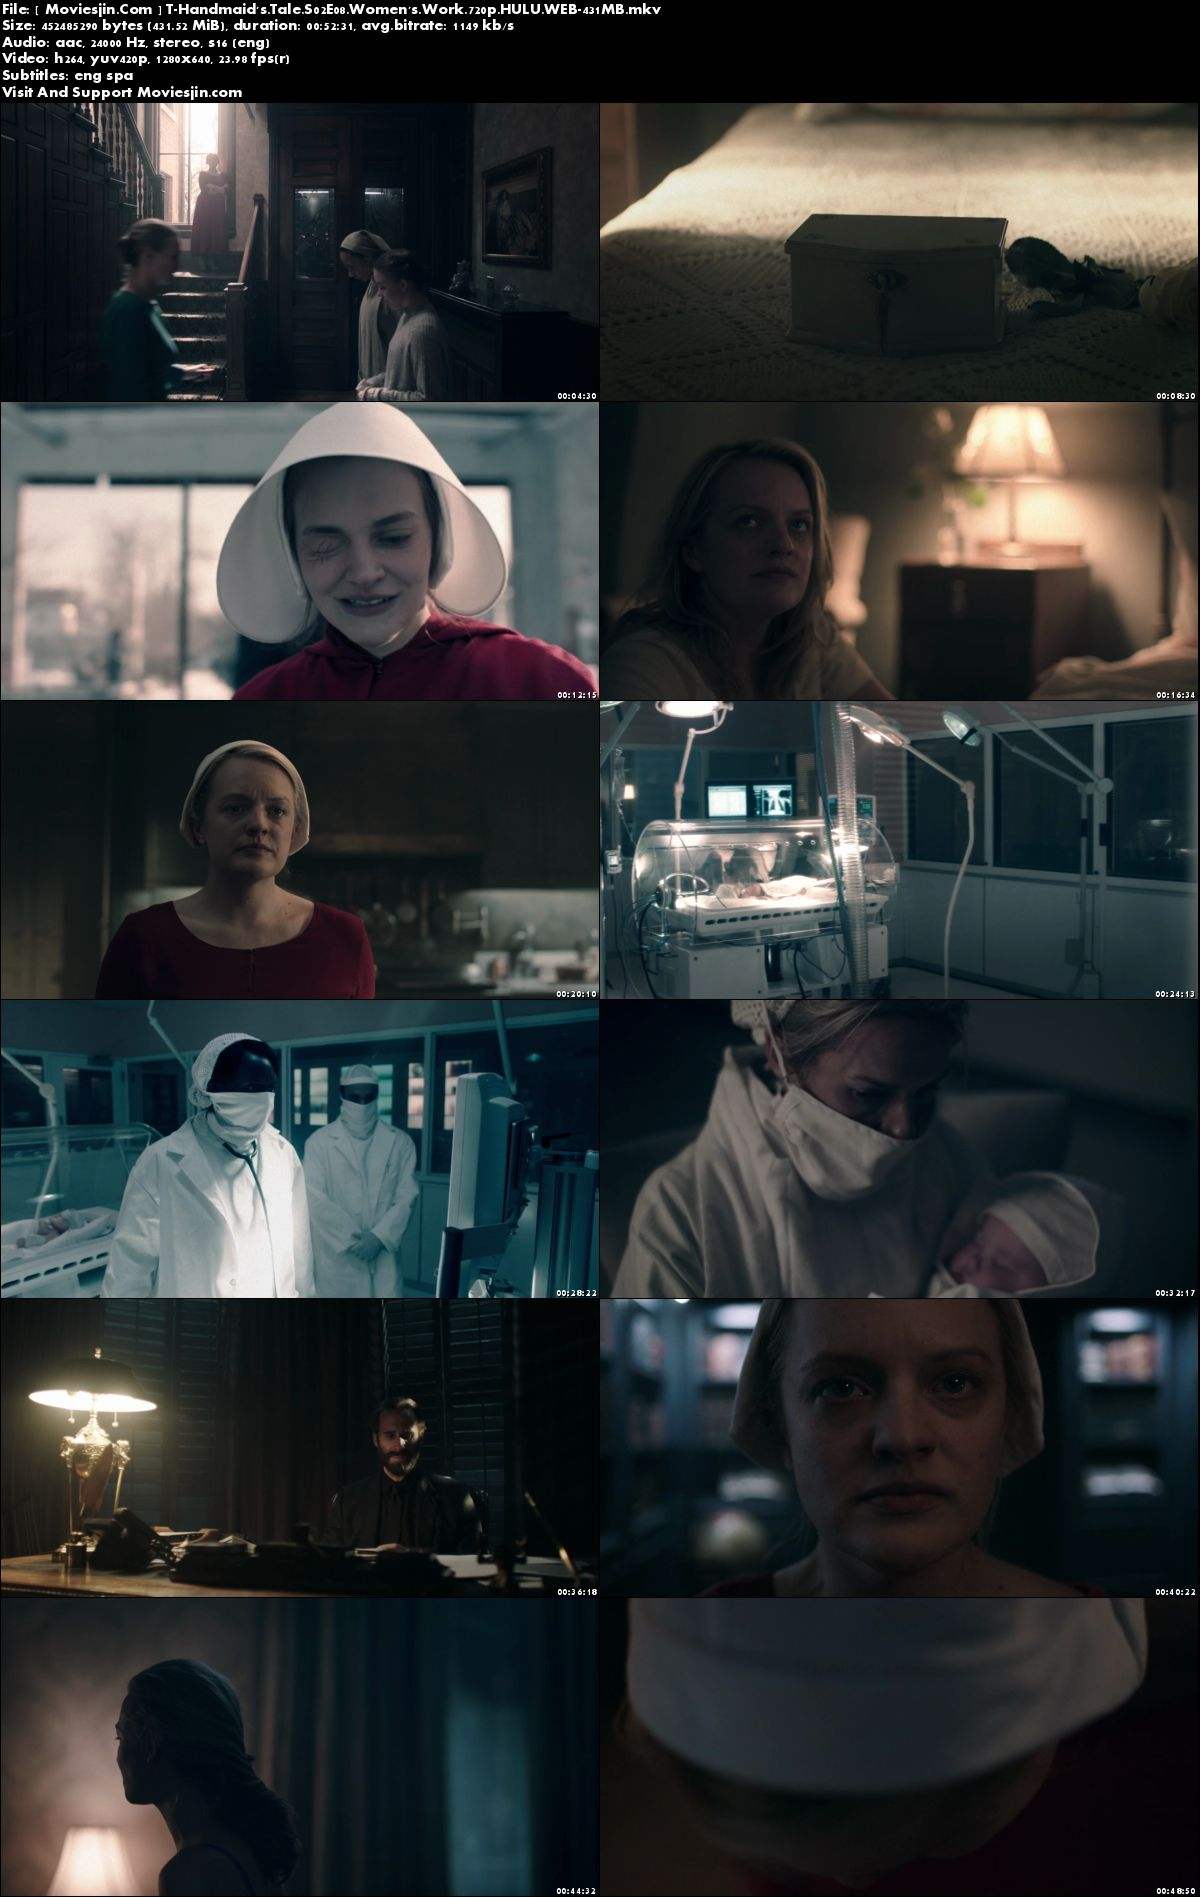 Watch Online The Handmaids Tale S02E08 HULU WEBDL 431MB 720p ESub Full Download mkvcage